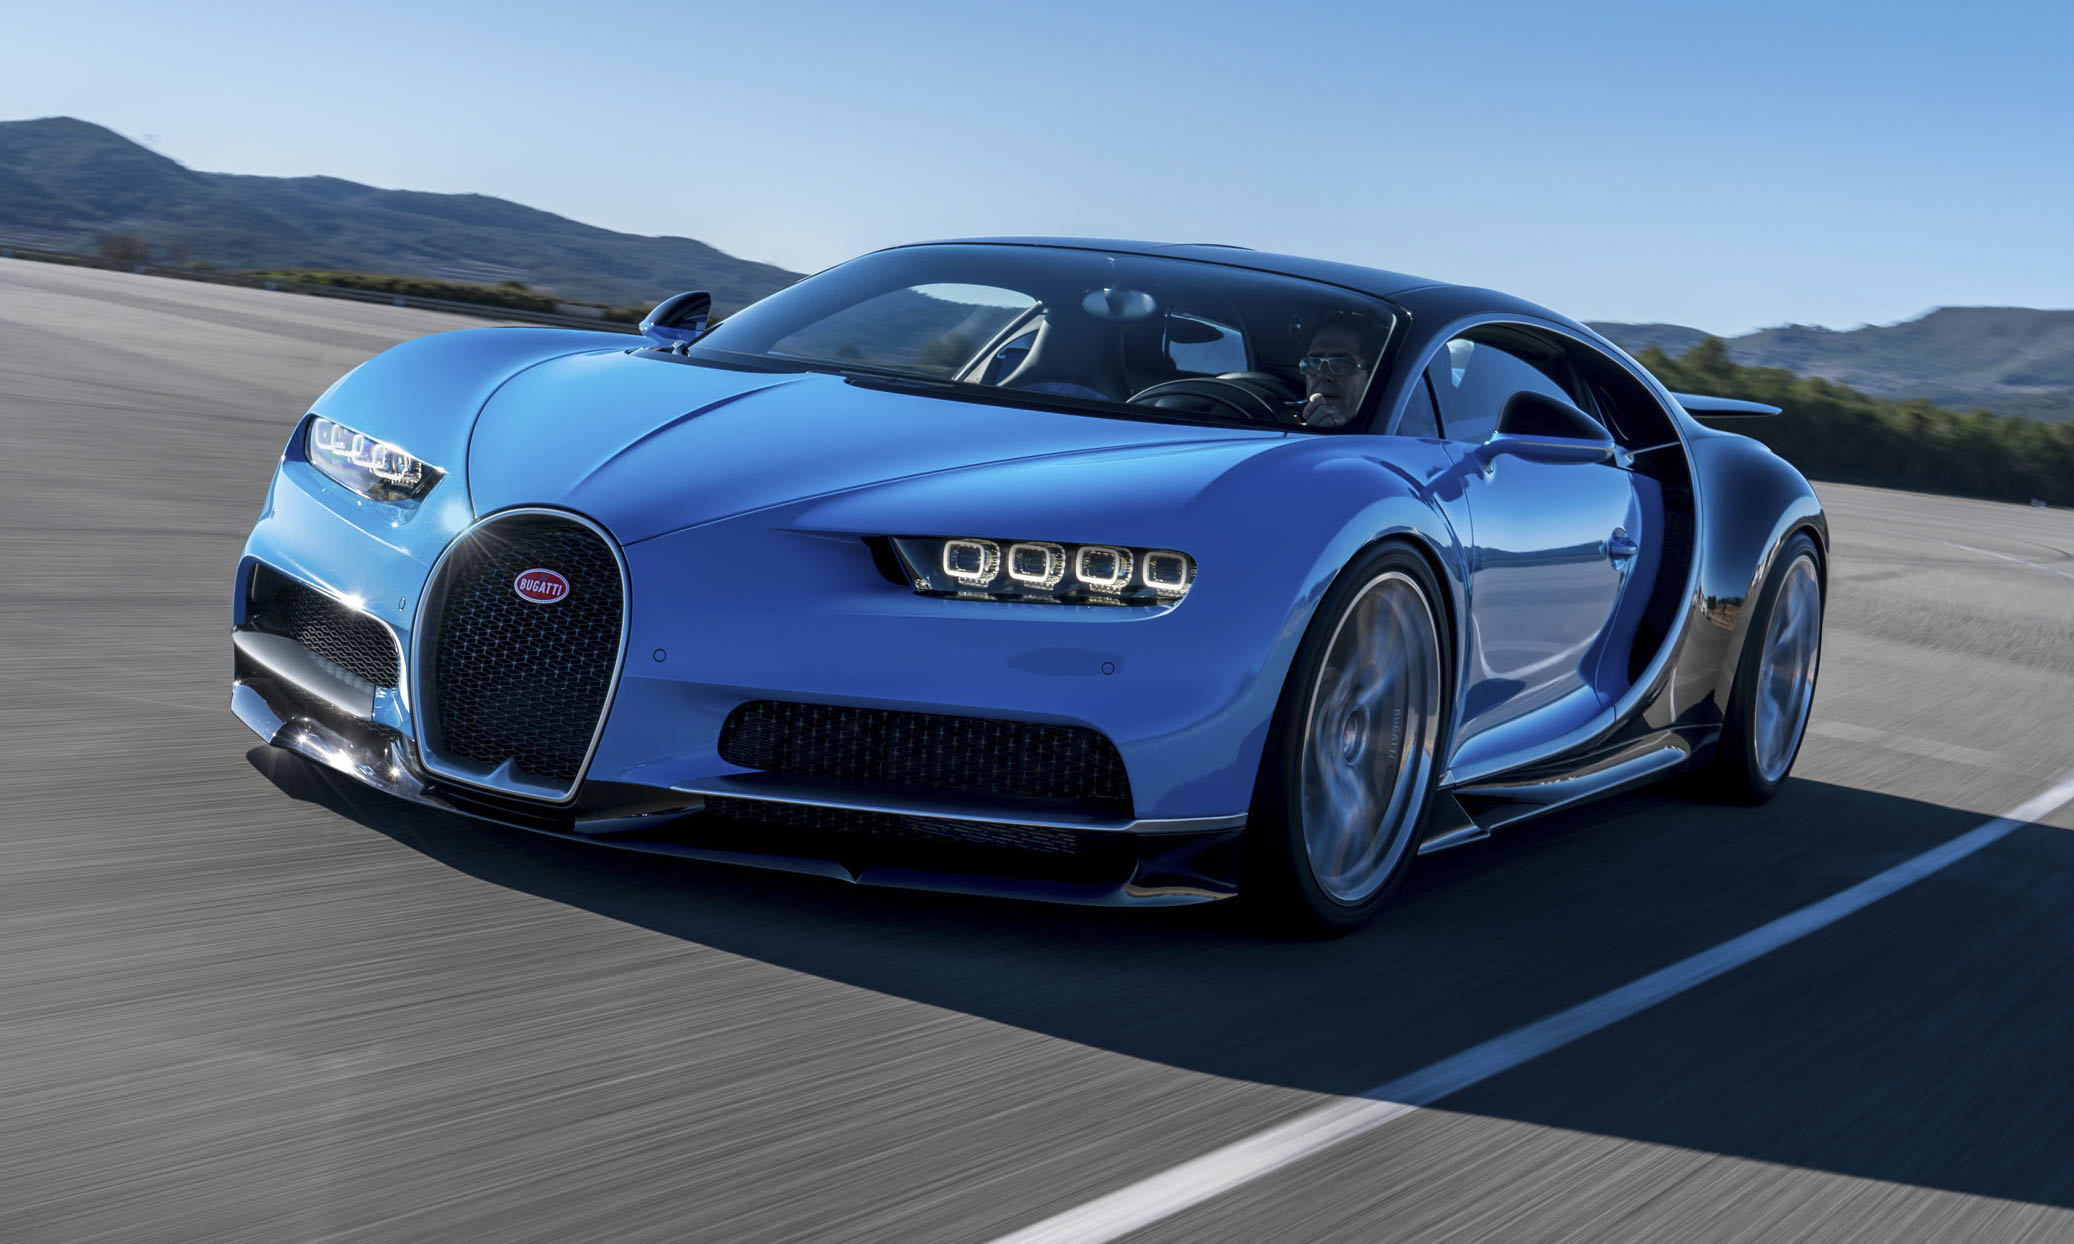 bugatti chiron interior with 2016 Geneva Motor Show Bugatti Chiron First Look on Bugatti Divo Price Rs 40 Crores Car 12279070 further 2017 Bugatti Chiron First Drive Review Pictures besides G20 Bmw 3 Series Rendered After Latest Spy Shots together with Bugatti Divo Price Specs And Review as well Chiron.